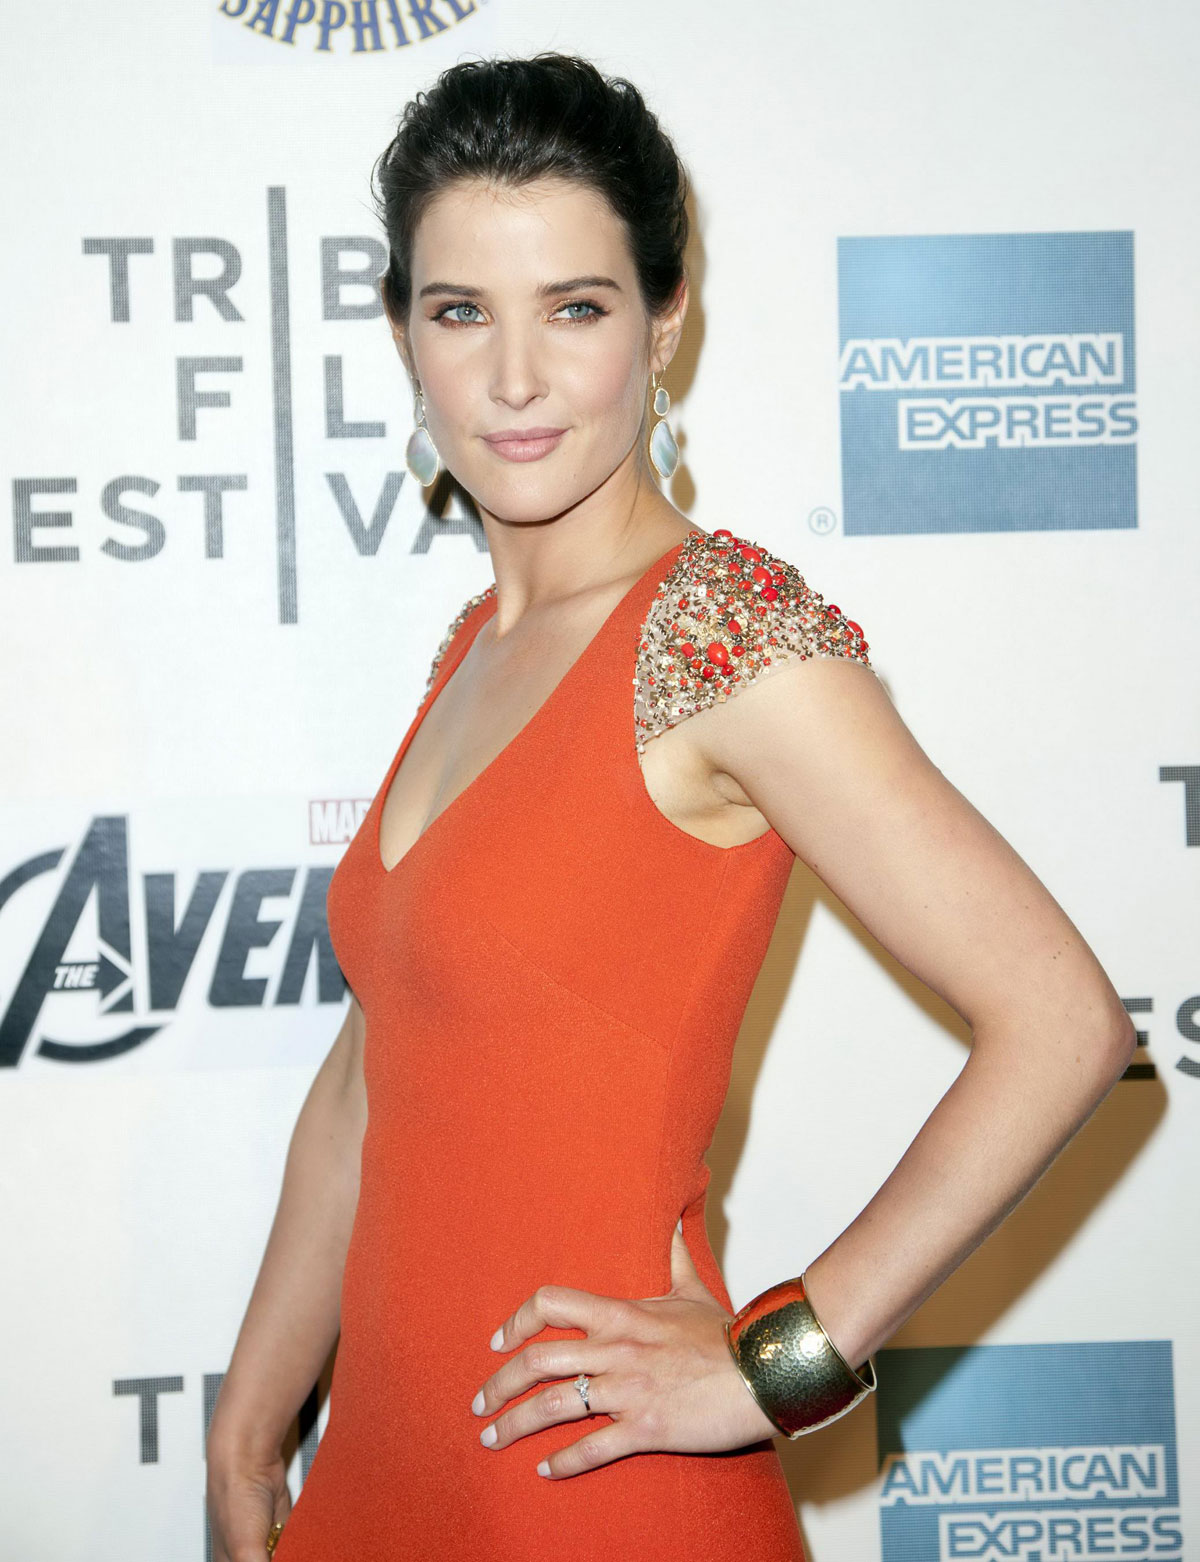 Cobie Smulders - Wallpaper Actress